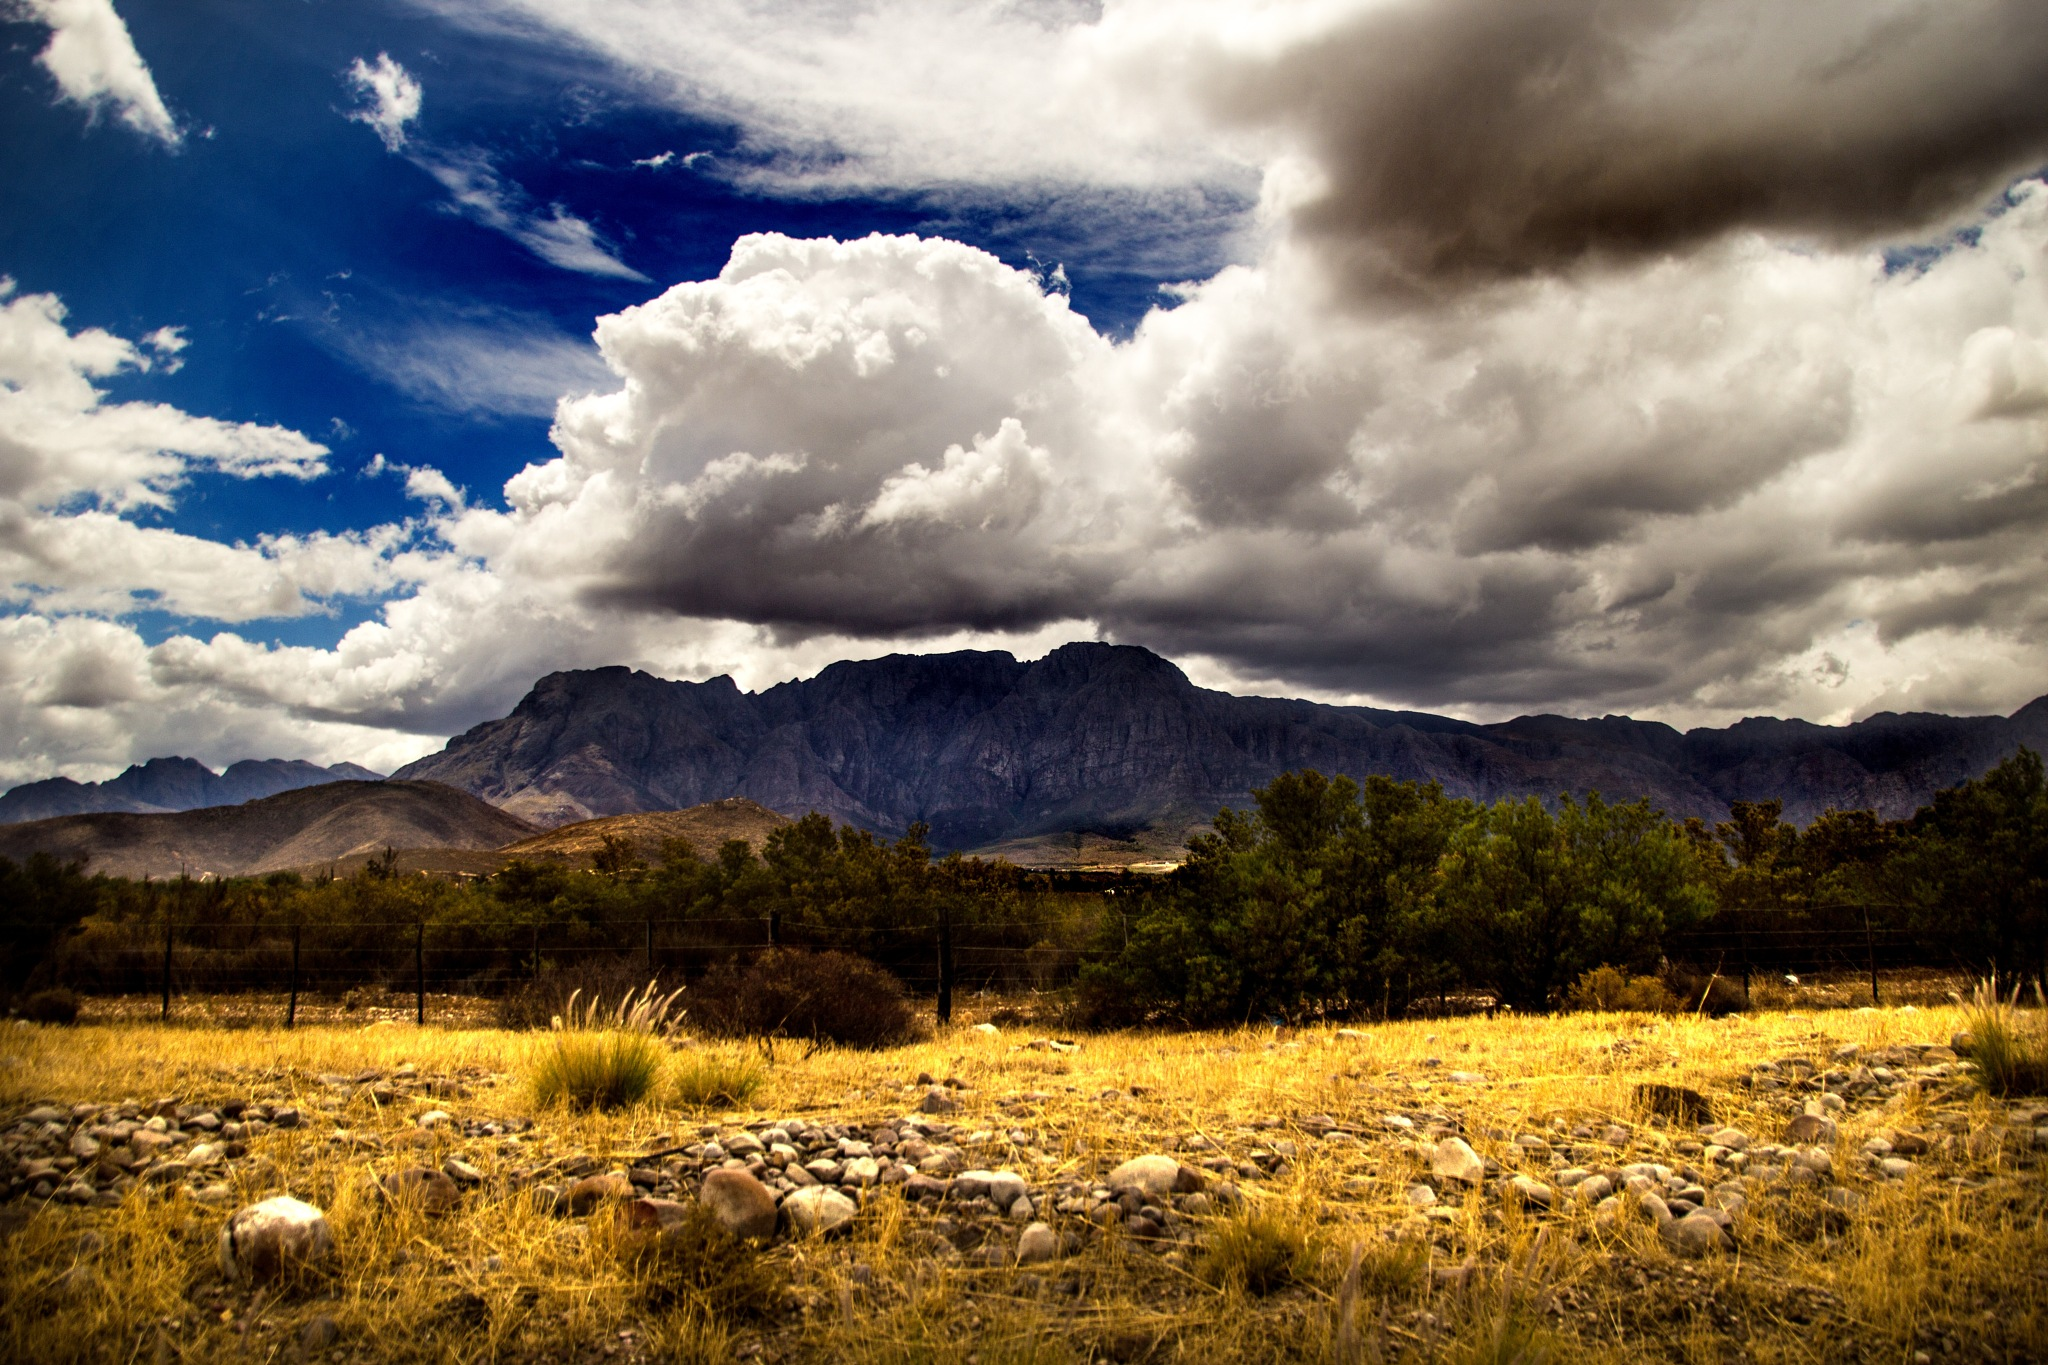 Trees, mountains and clouds by Nauta Piscatorque